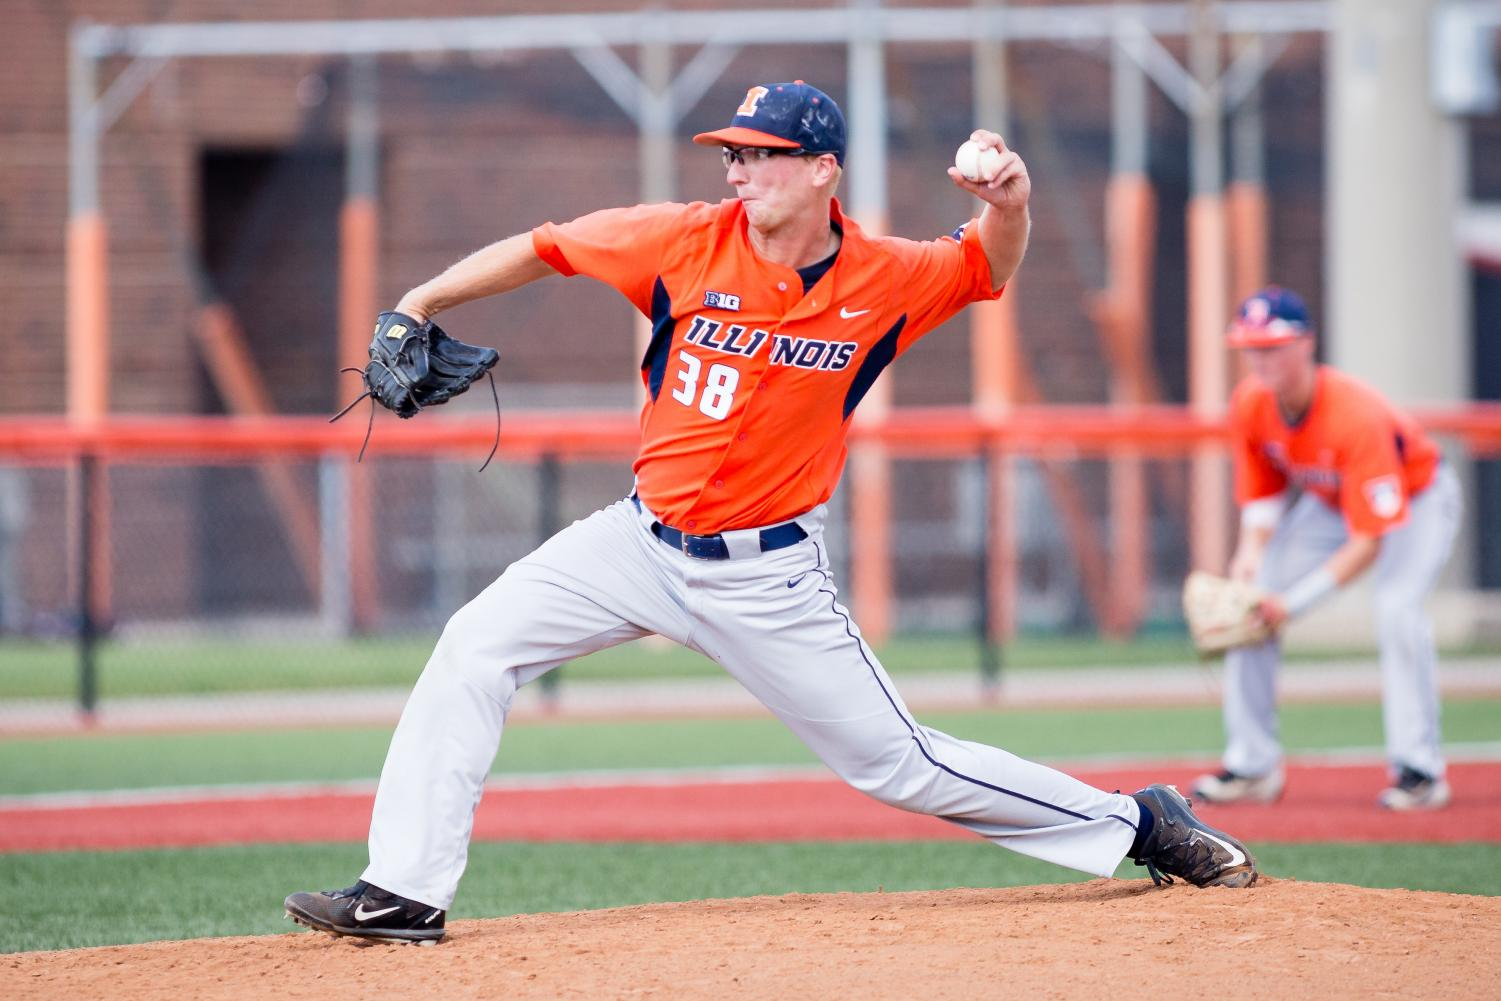 Illinois pitcher Andy Fisher (38) delivers the pitch during the game against Indiana State at Illinois Field on Saturday, September 24.